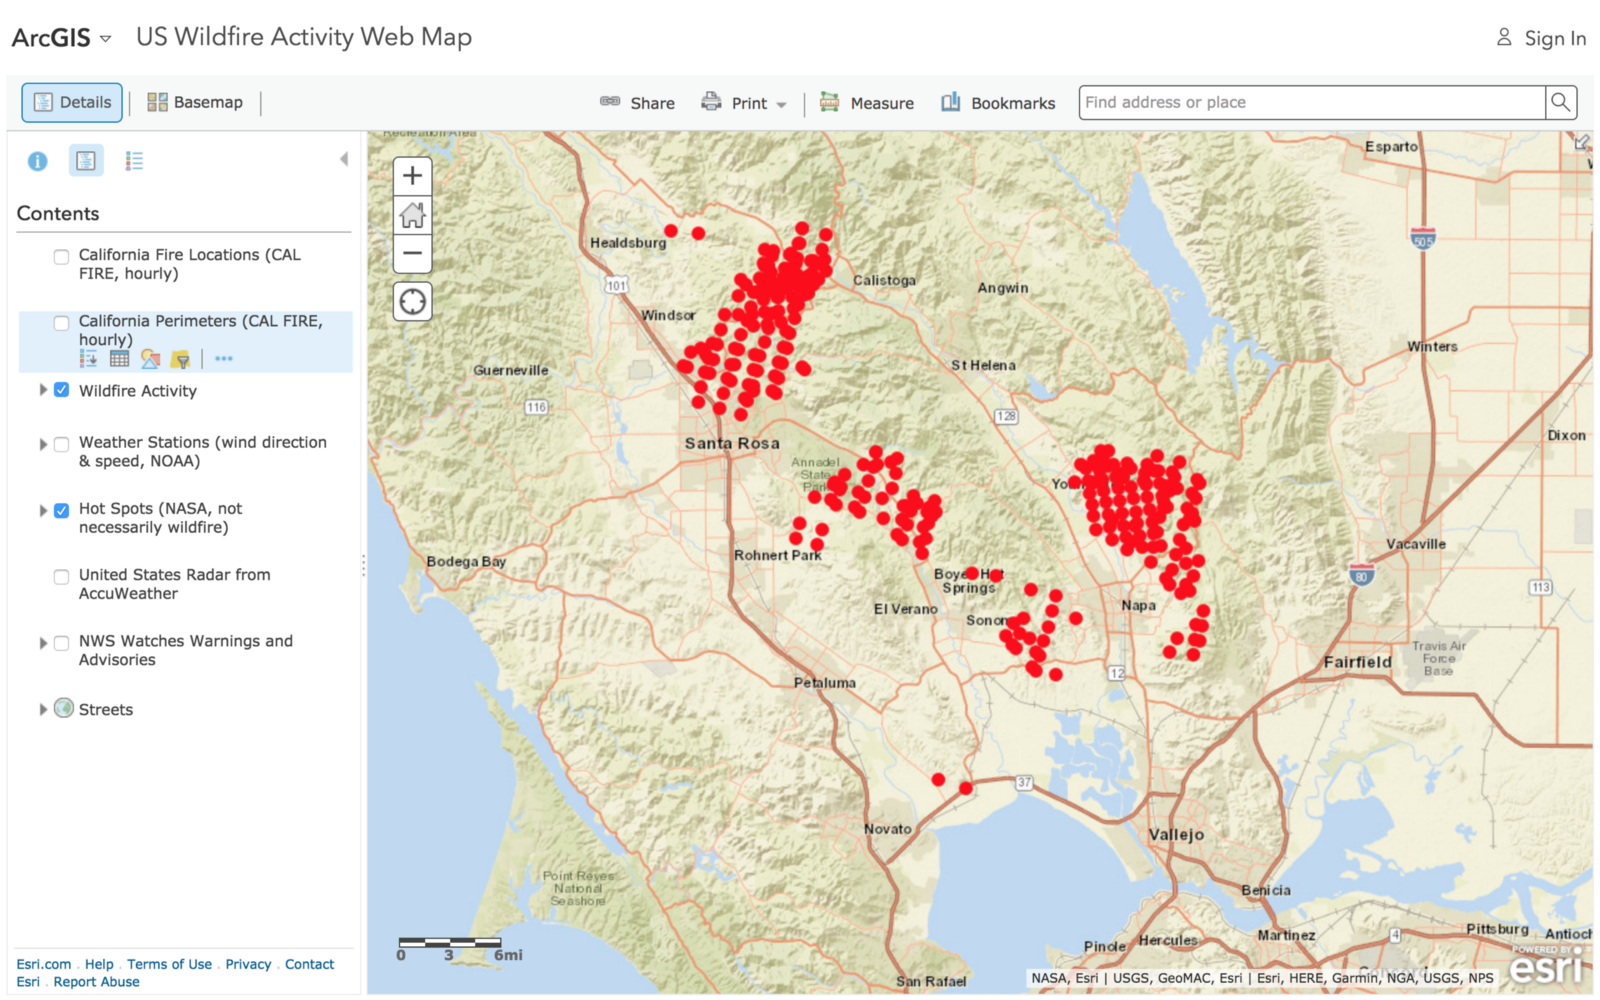 Cal Fire Map Today.In Search Of Fire Maps Greeninfo Network